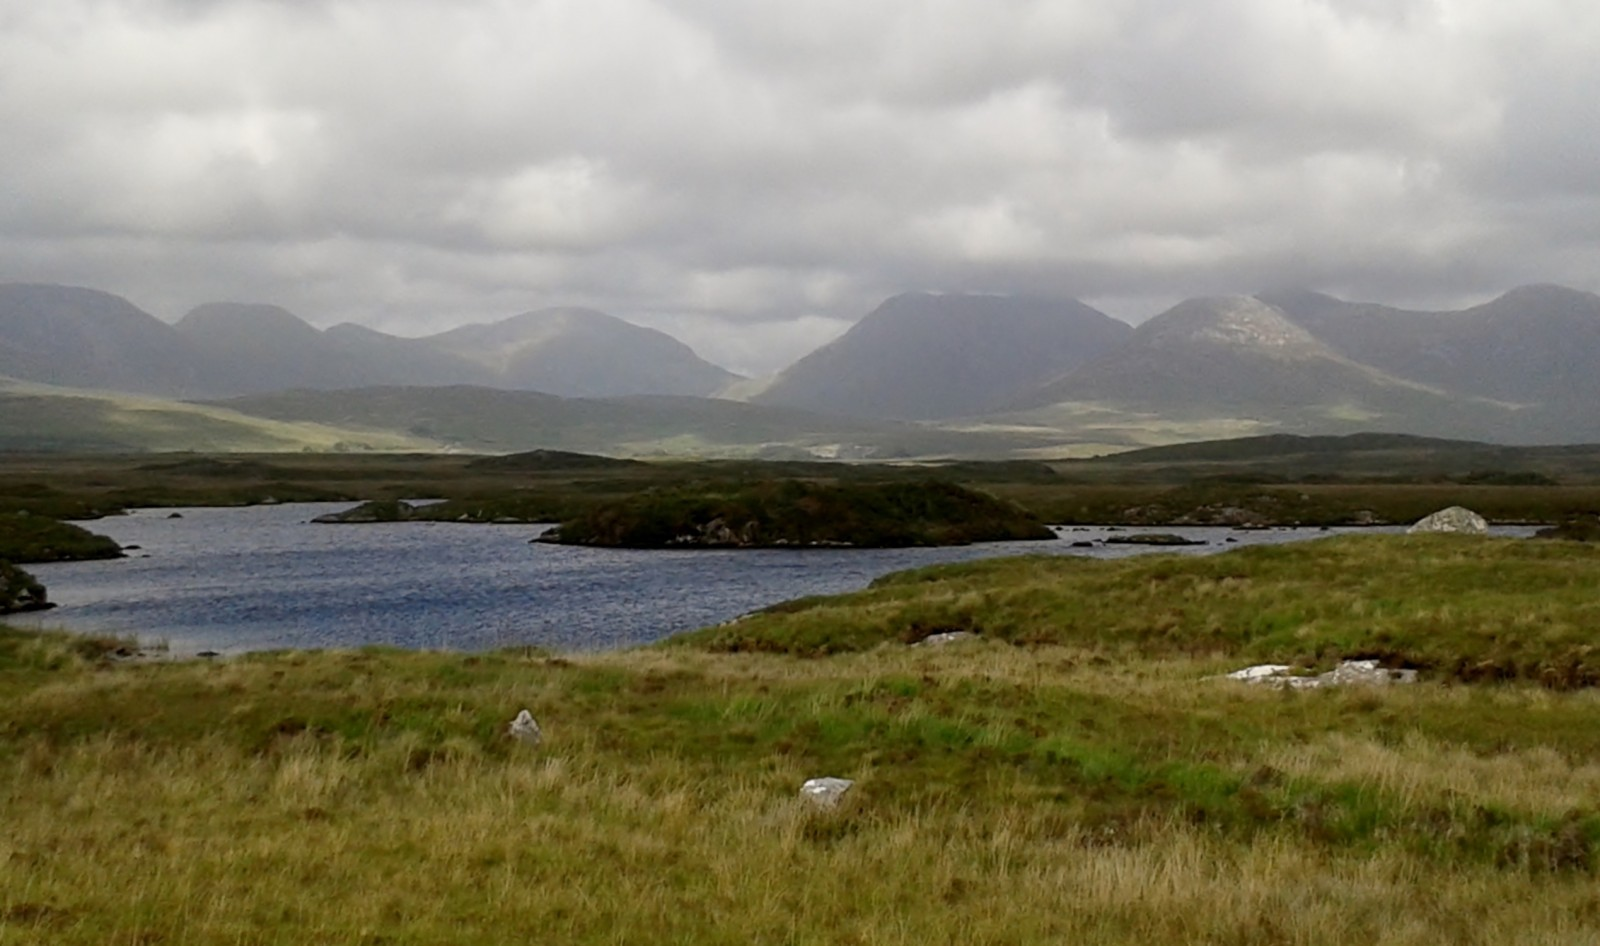 Road trip through Connemara